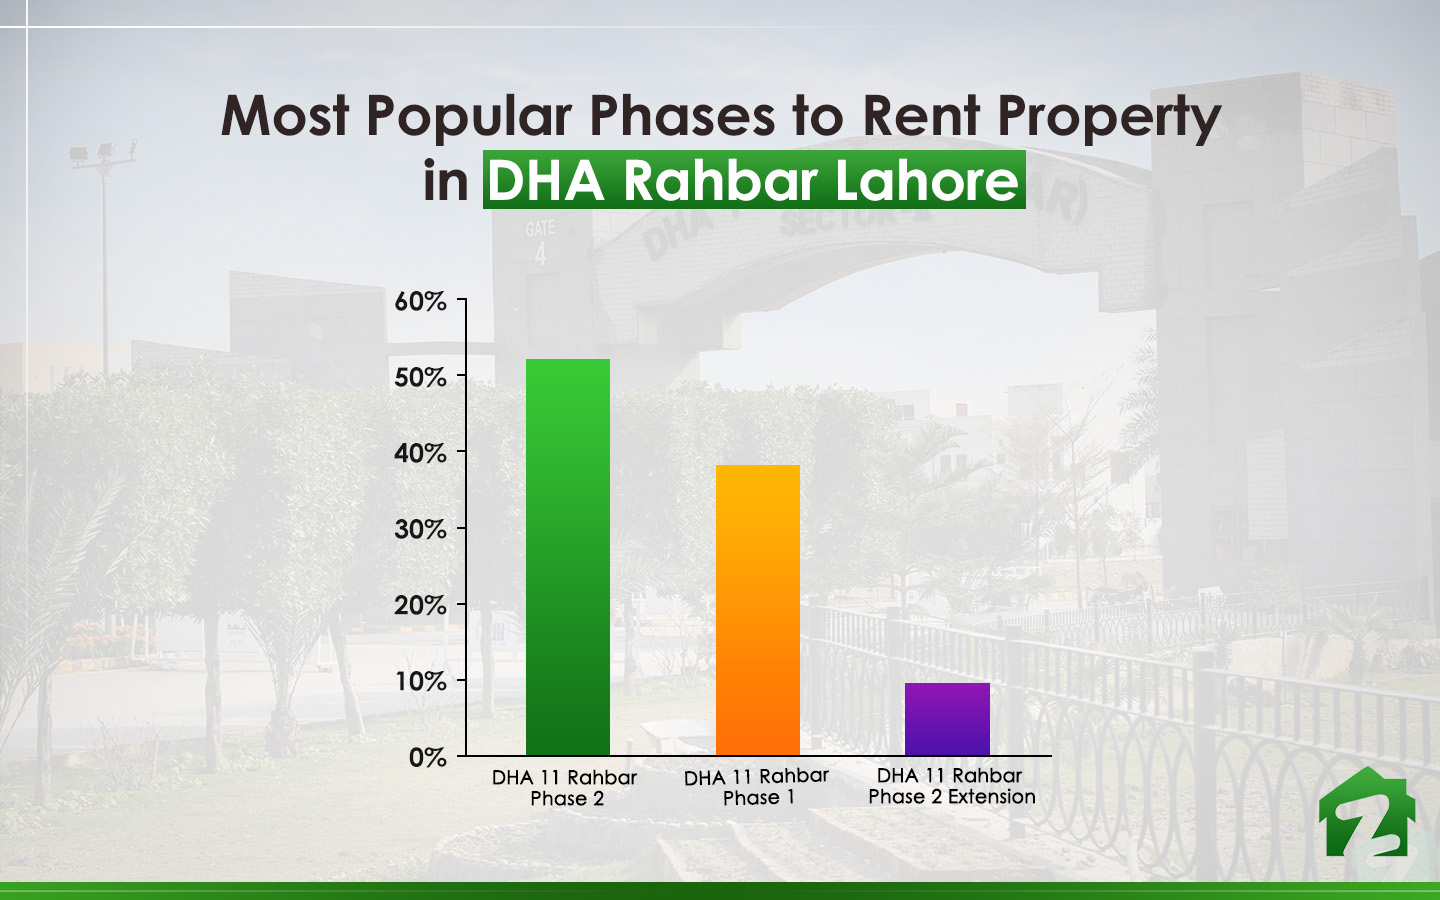 Popular Phases of Dha Rahbar lahore